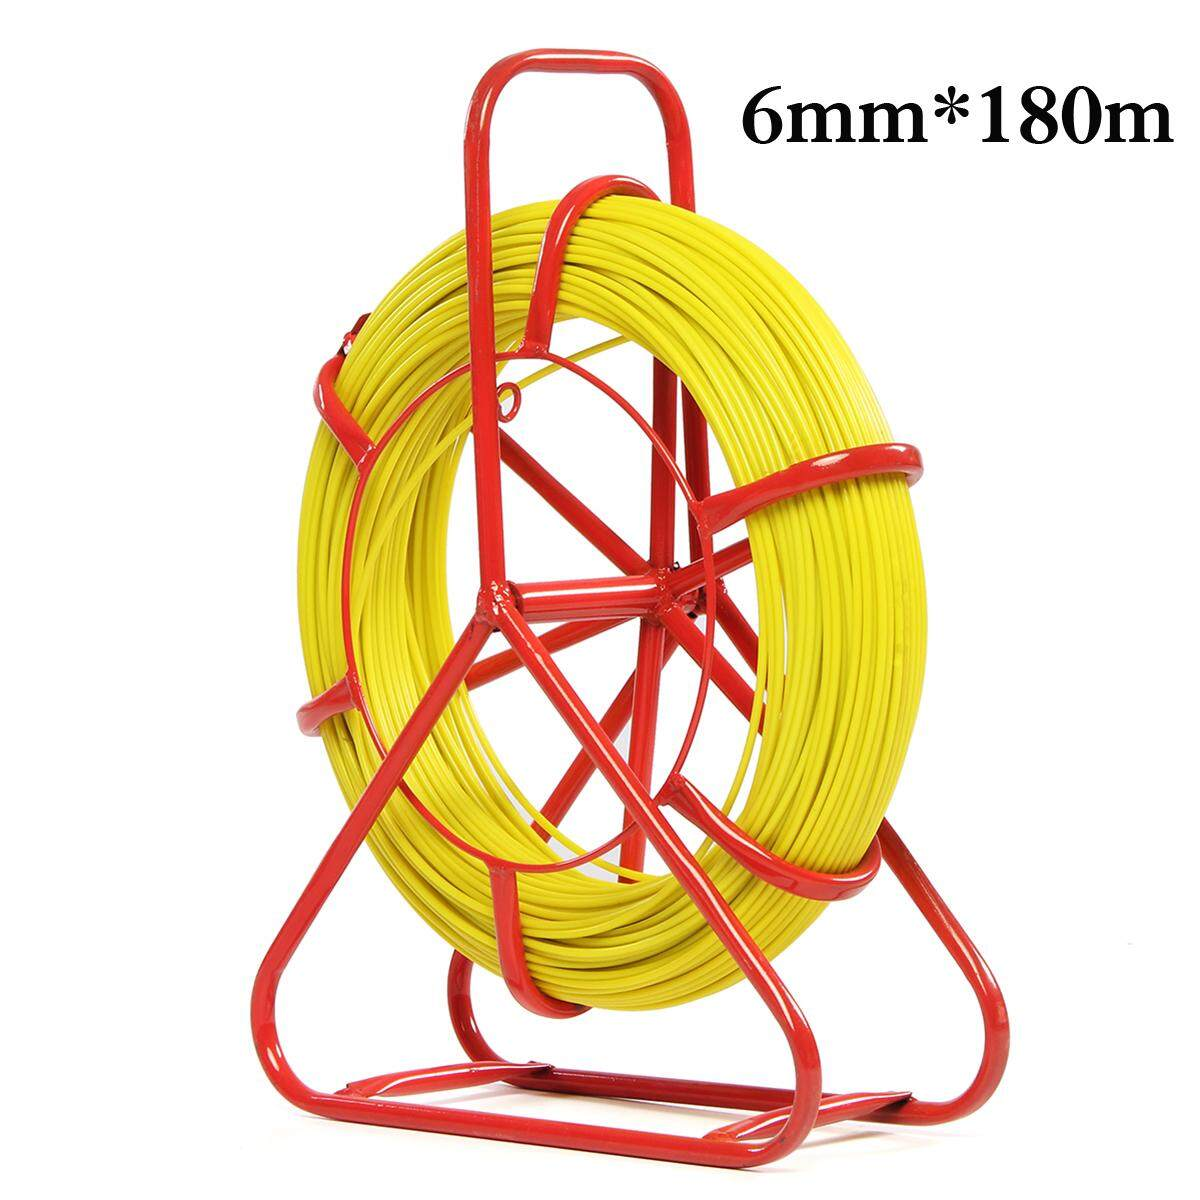 6mm Fiberglass Wire Cable Fish Tape Rodder Tube Running Rod Duct Puller - Intl By Audew.